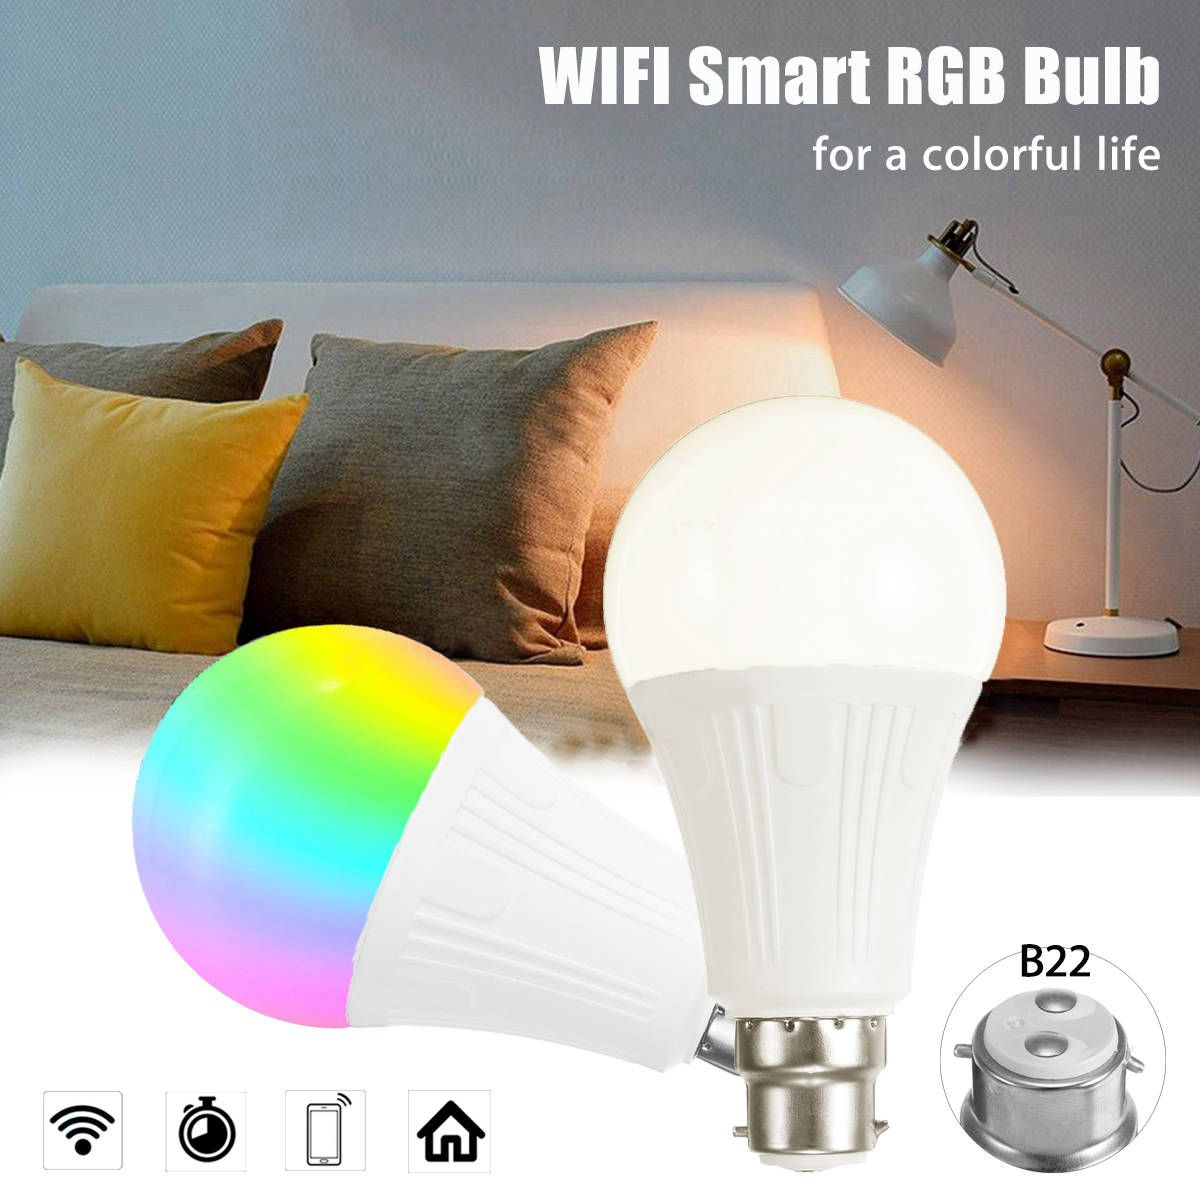 B22 7W RGBW WiFi APP Controlled LED Smart Light Bulb for